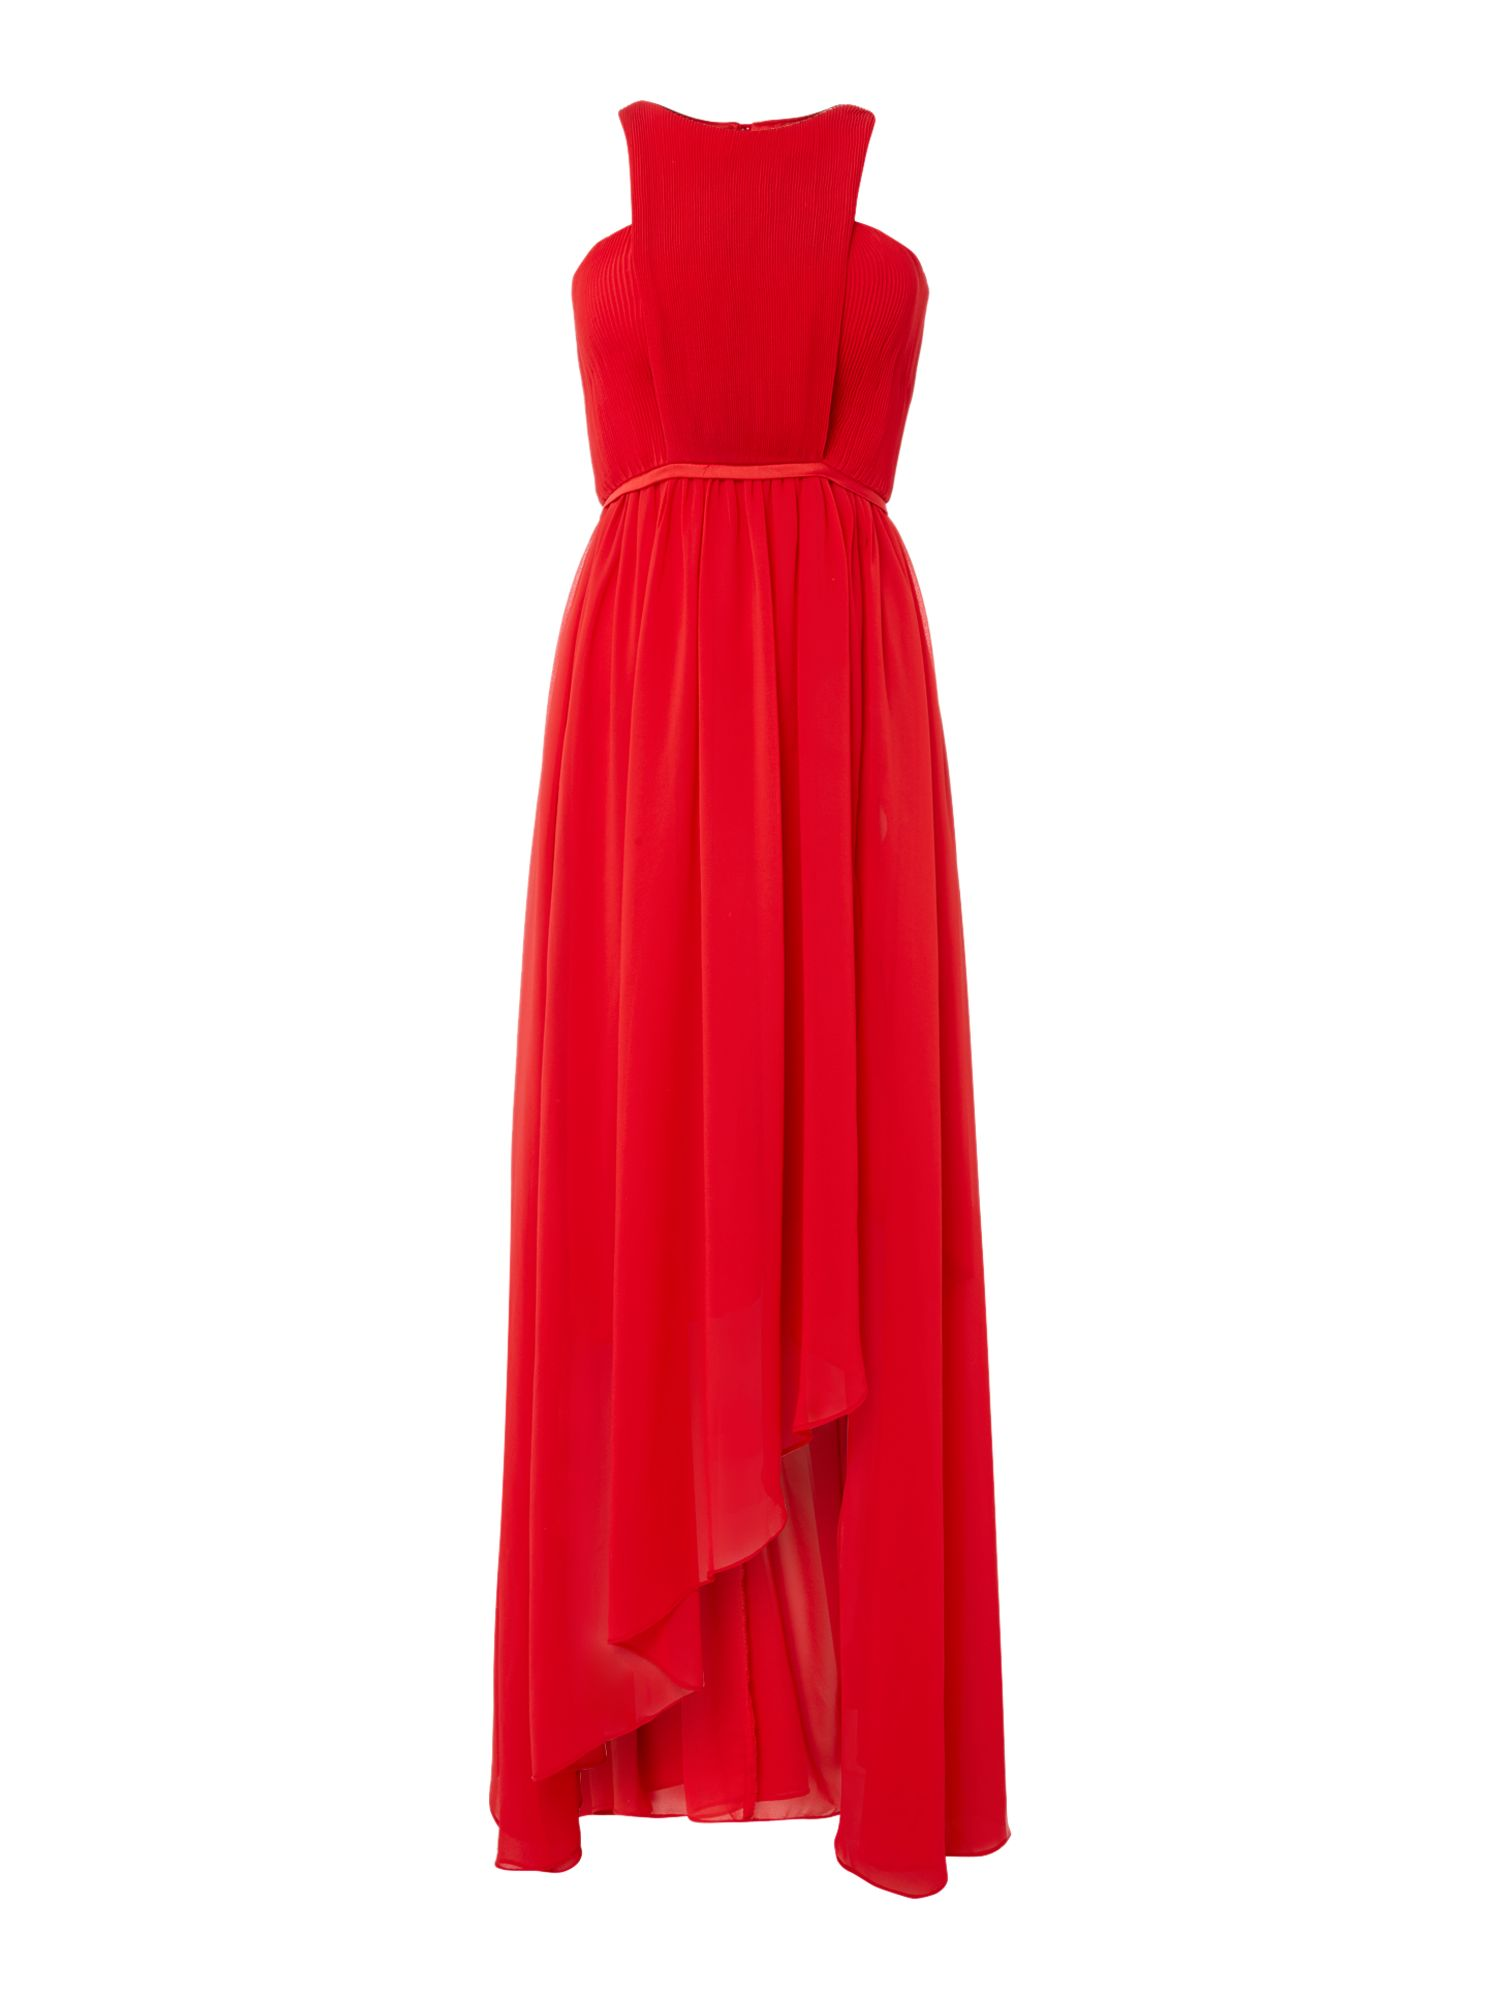 Studio 75 Studio 75 Sleeveless High Neck Cut Out Detail Maxi Dress, Red